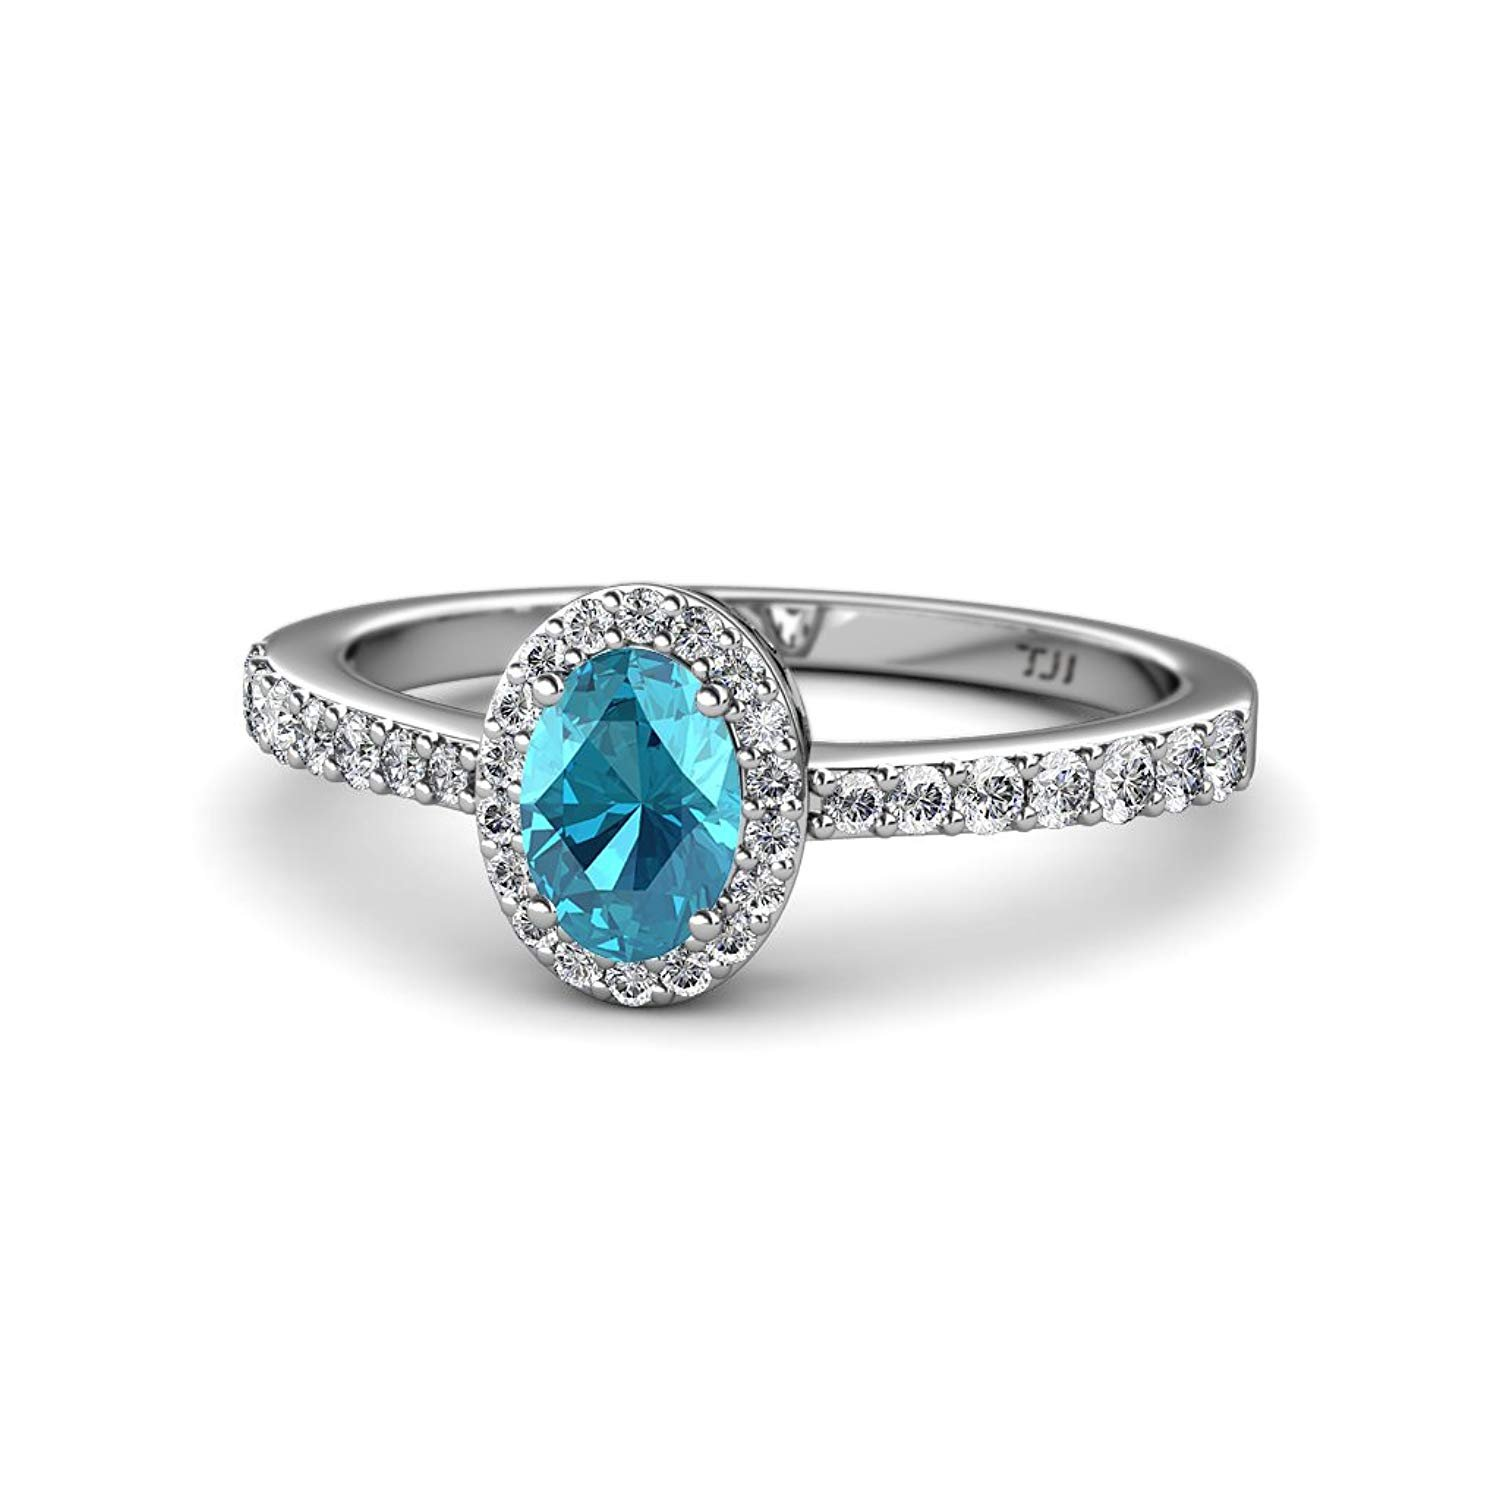 Oval 7x5mm London Blue Topaz & Diamond Halo Engagement Ring 1.38 Carat tw in 14K White Gold.size 6.0 by TriJewels